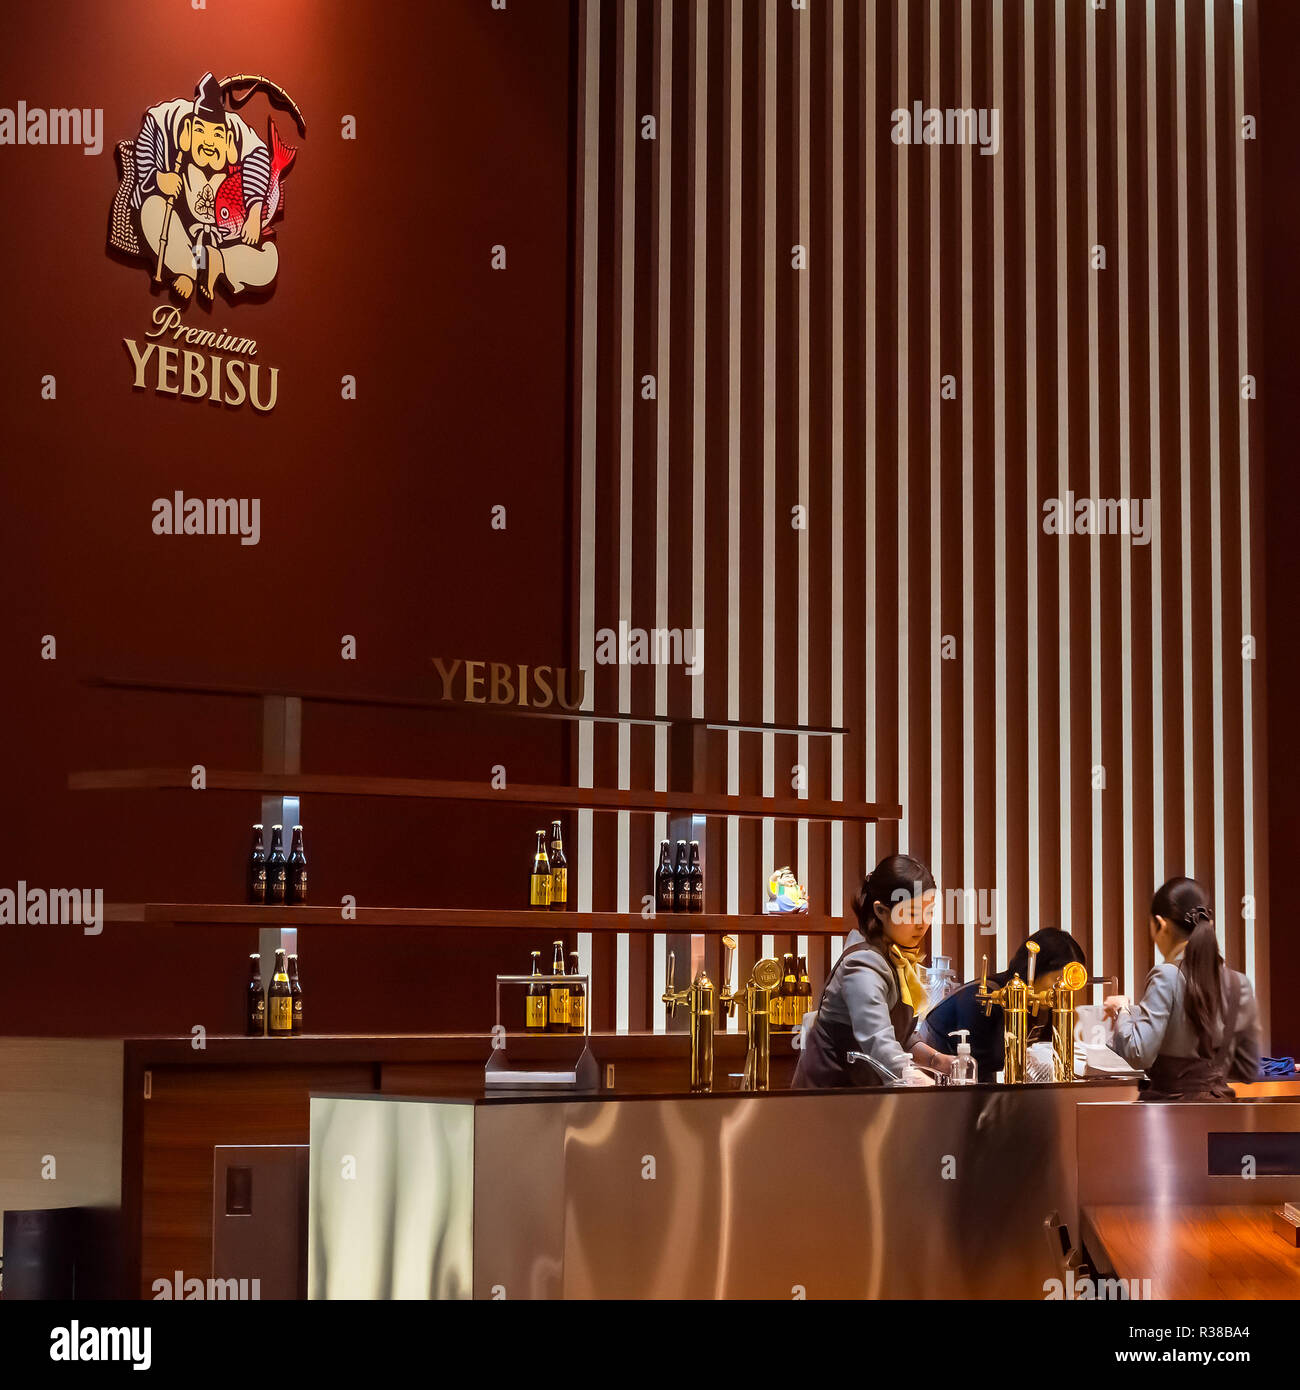 Tokyo, Japan - April 26 2018: The Museum of Yebisu Beer opened in 2010, celebrating 120 years of the brand, the museum houses collection of photos, ol - Stock Image